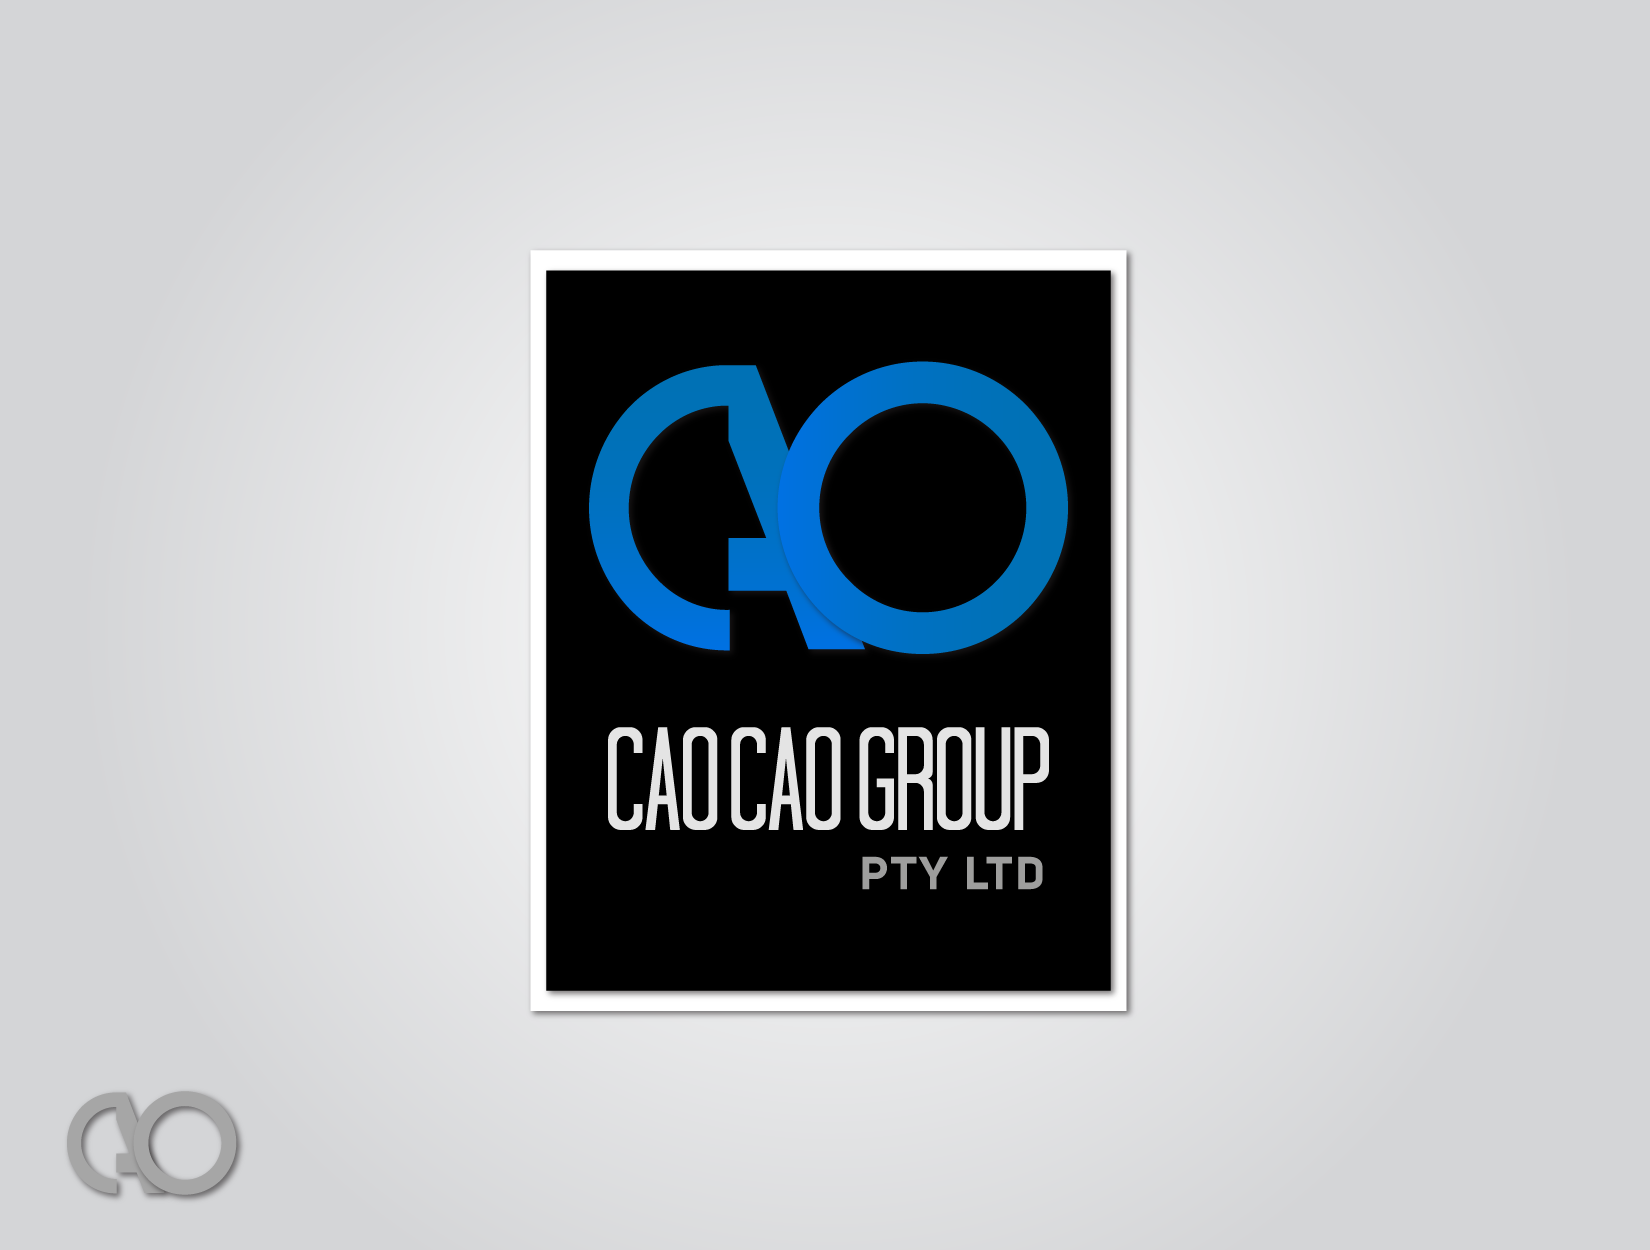 Logo Design by funkeekhan - Entry No. 163 in the Logo Design Contest cao cao group pty ltd Logo Design.